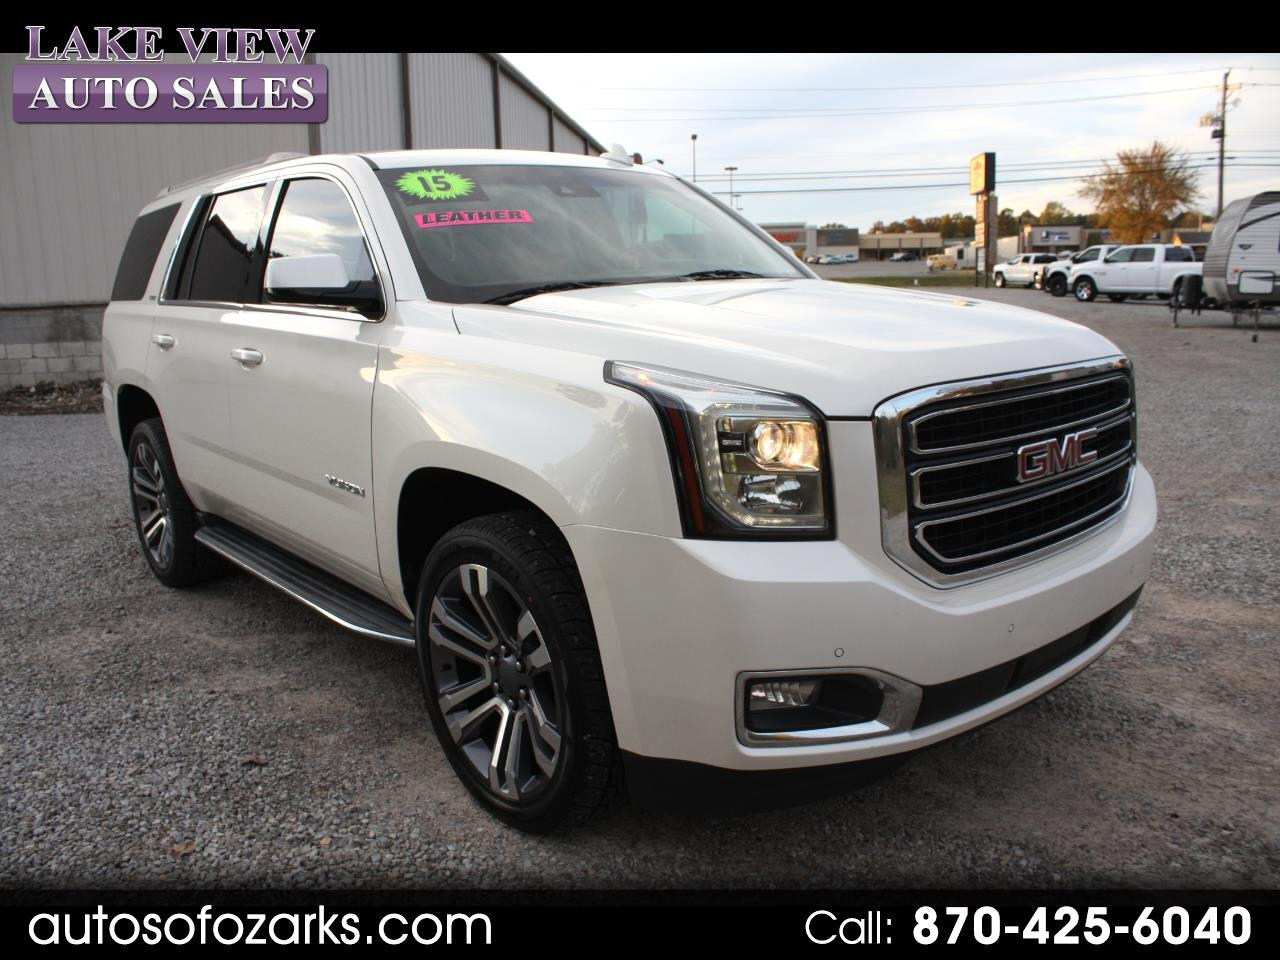 Used Cars For Sale Mountiain Home Ar 72653 Lakeview Auto Sales 2012 Gmc Yukon Fuel Filter 2015 Slt 4wd